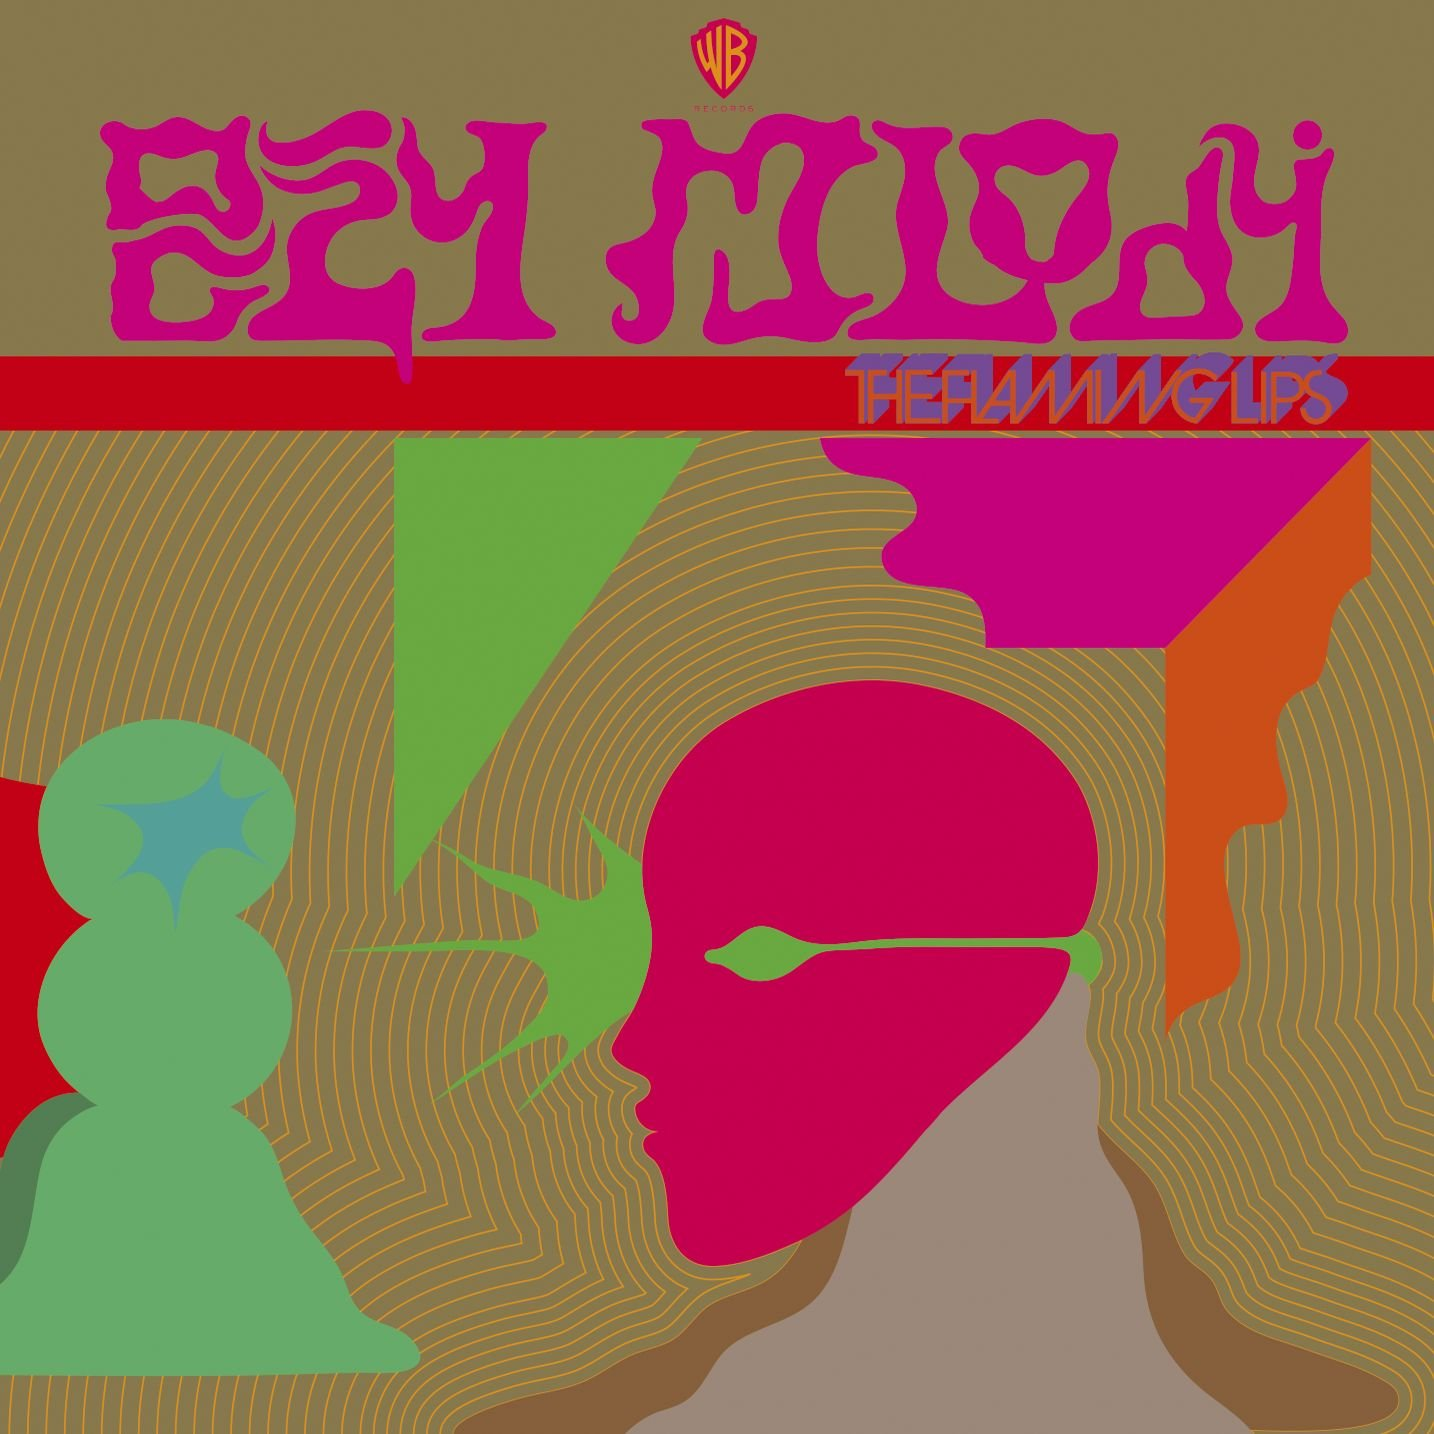 CD : The Flaming Lips - Oczy Mlody [Explicit Content] (CD)